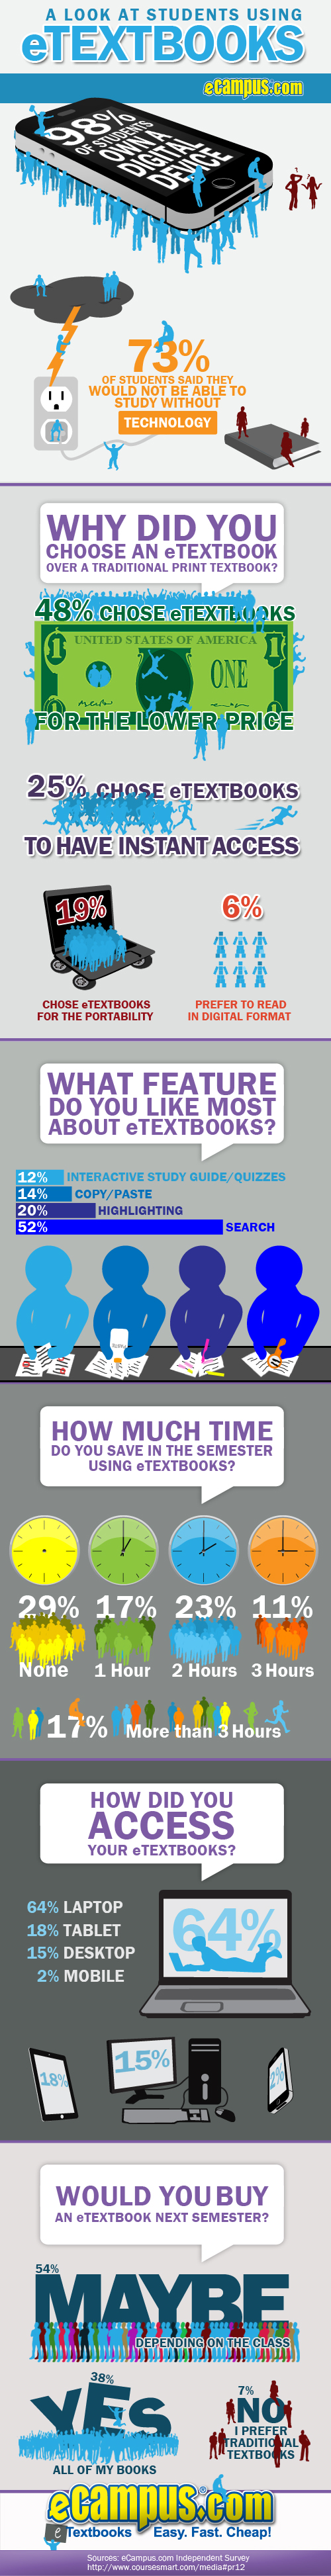 eCampus.com eTextbook infographic